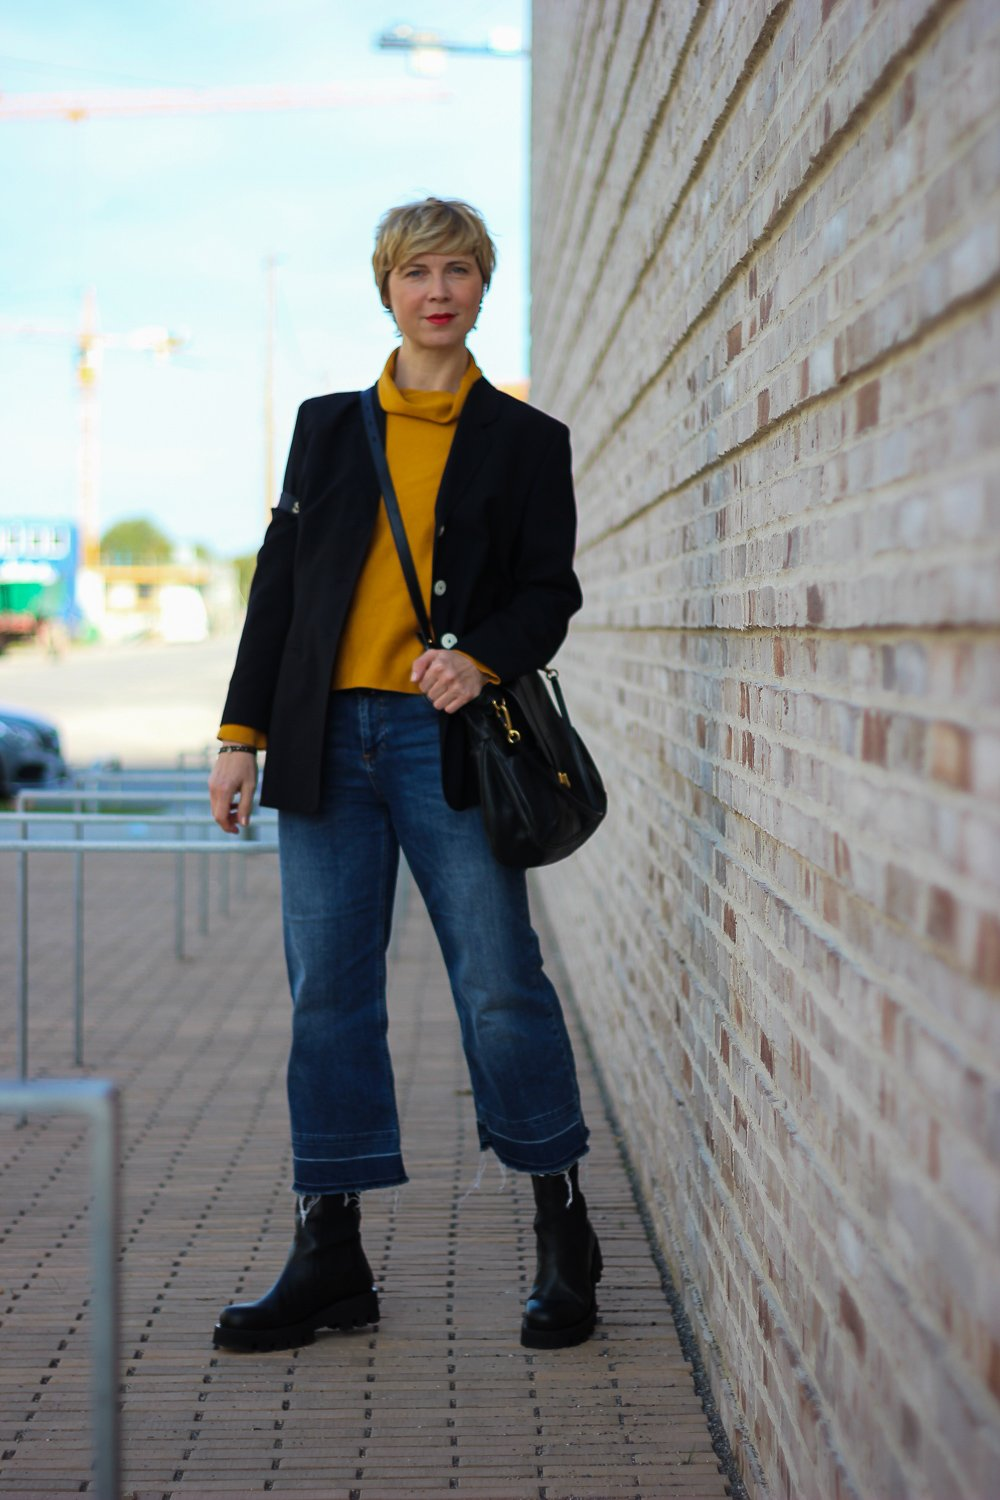 conny doll lifestyle: Herbstlook, Blazer, curry Pullover, neyo., casual Styling